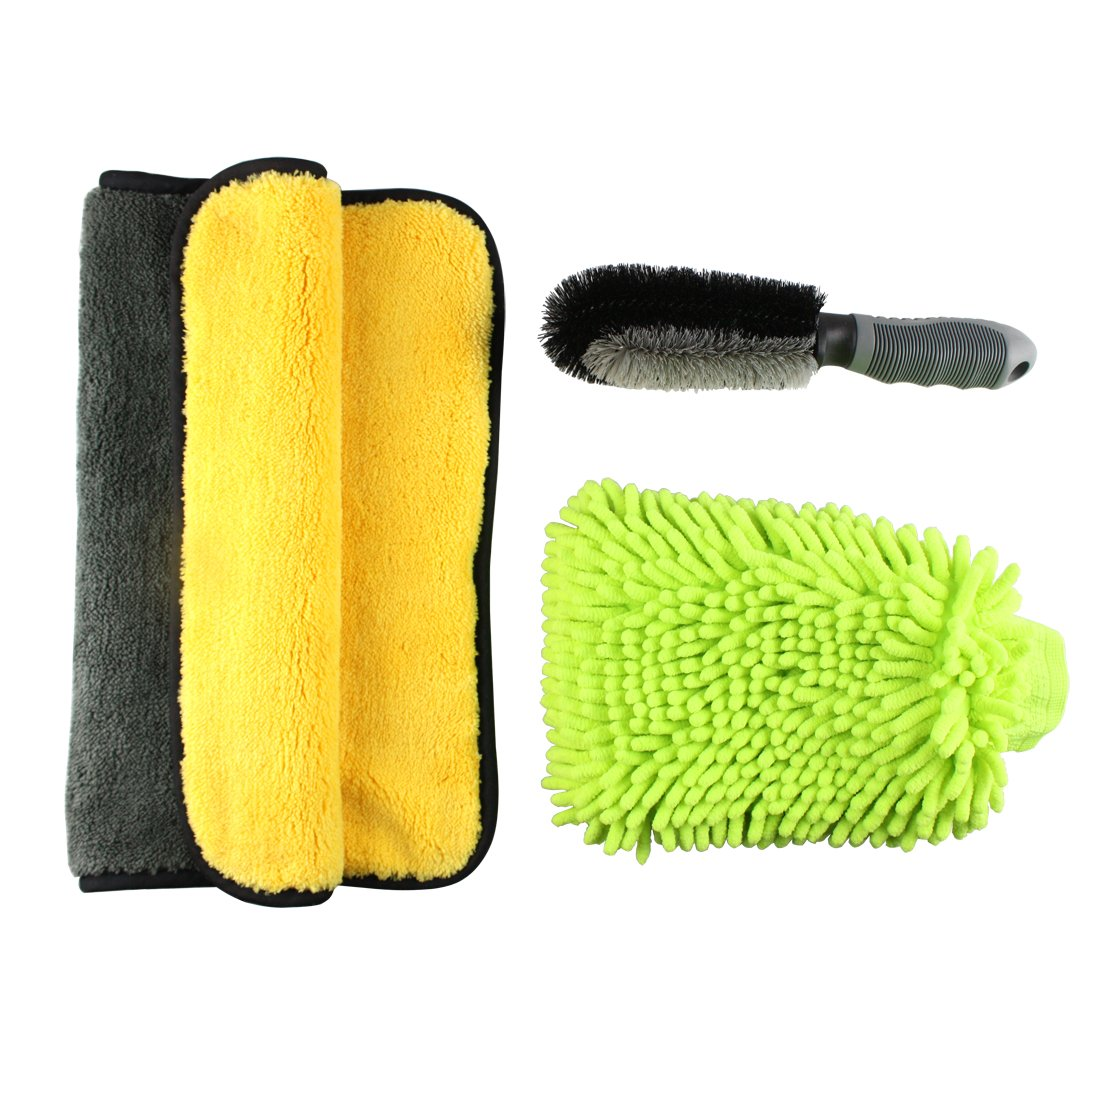 Car Cleaning Kit, auto cleaning tools with Wash Mitt/Tire Rim Scrub/Detailing Towels (3 PCS) LYCXC